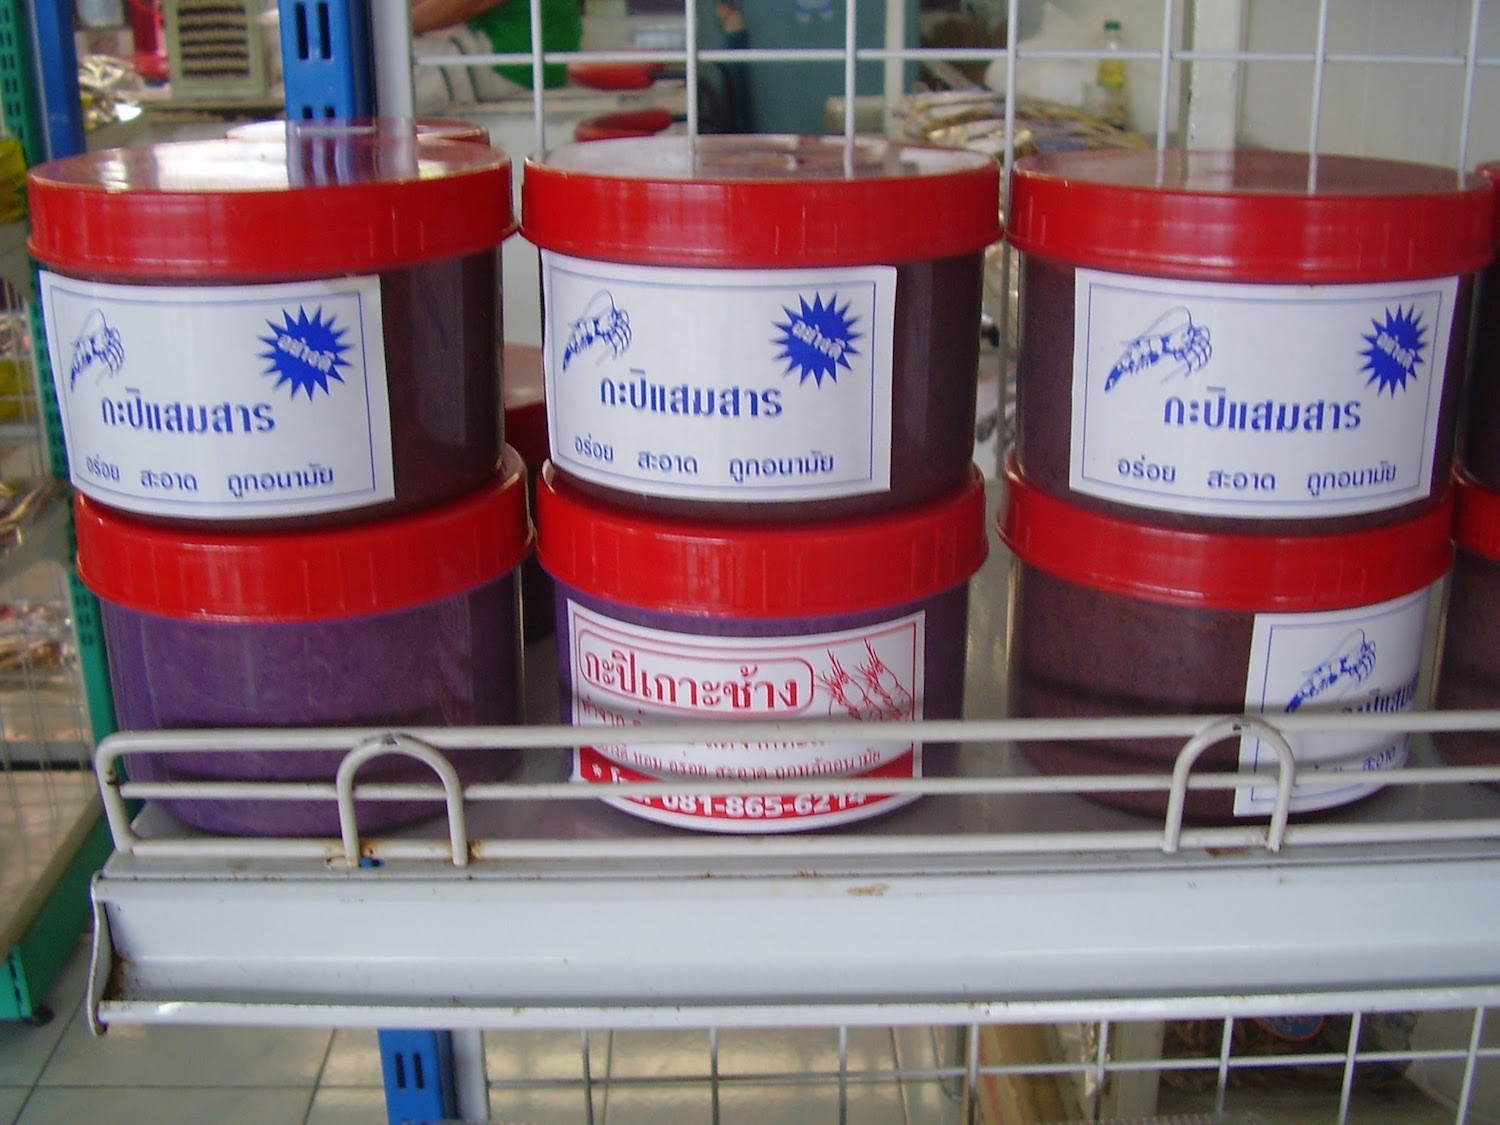 Pic: The pungent ingredient on sale in a Thai store